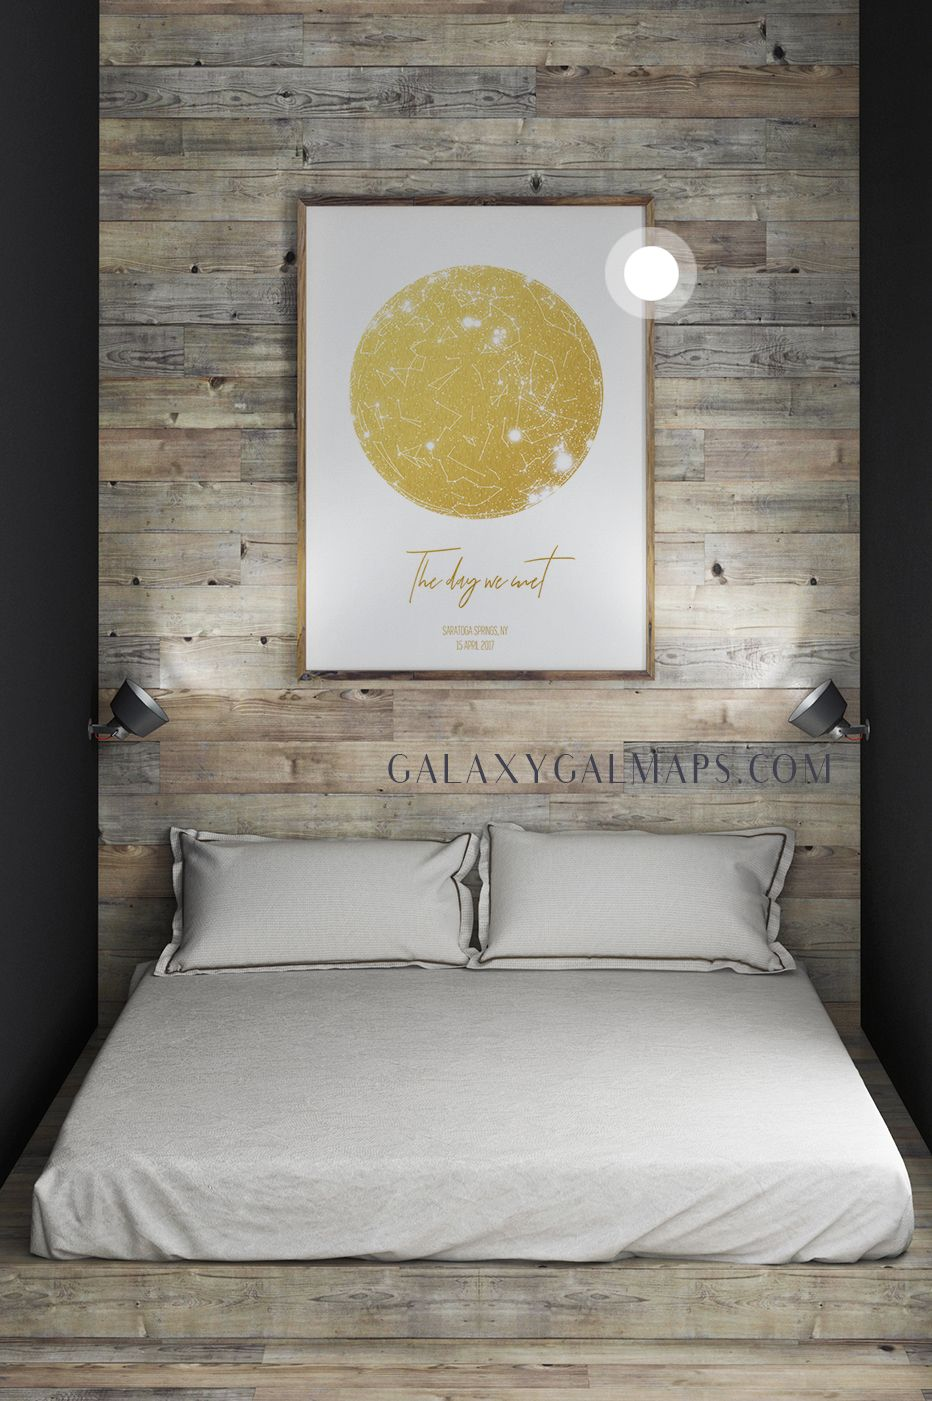 Personal Star Map By Date And Location 13th Anniversary Gift For